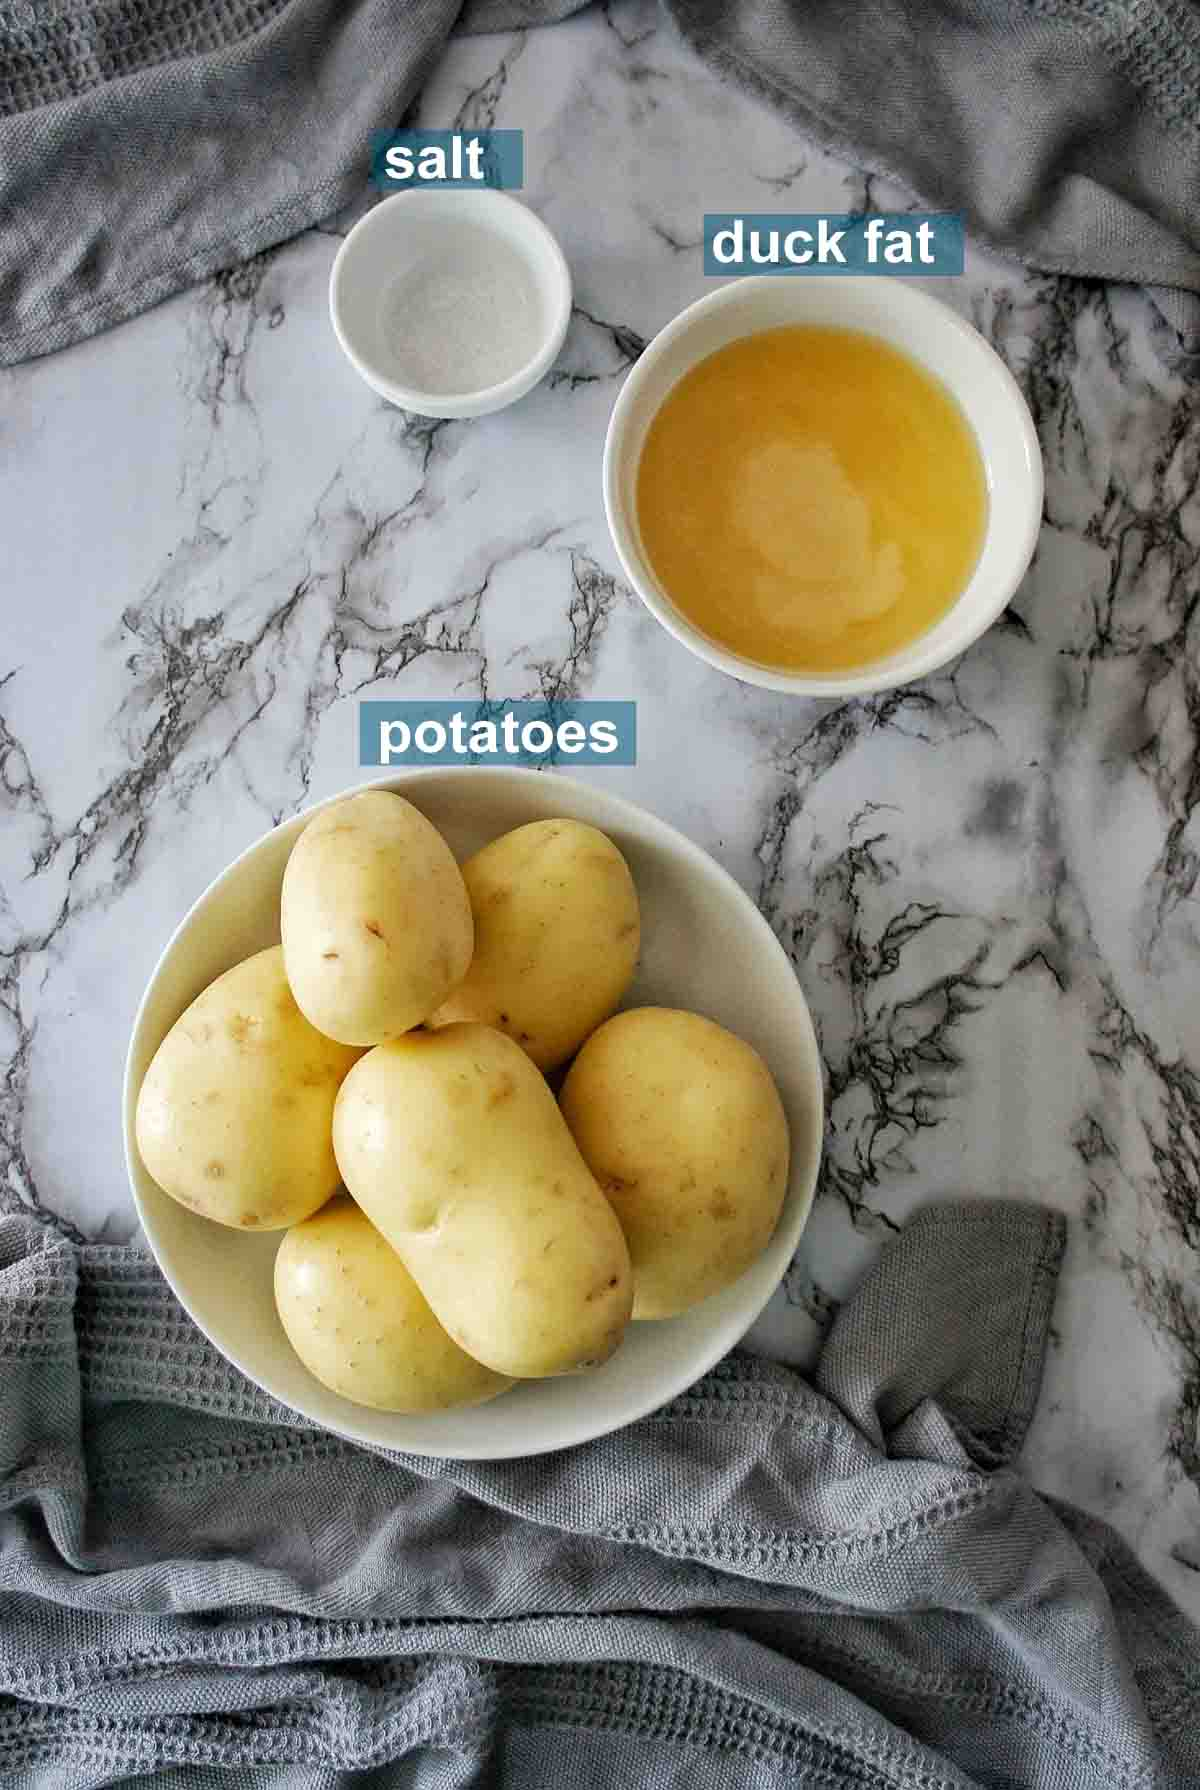 Ingredients for duck fat potatoes on a marble background with text labels